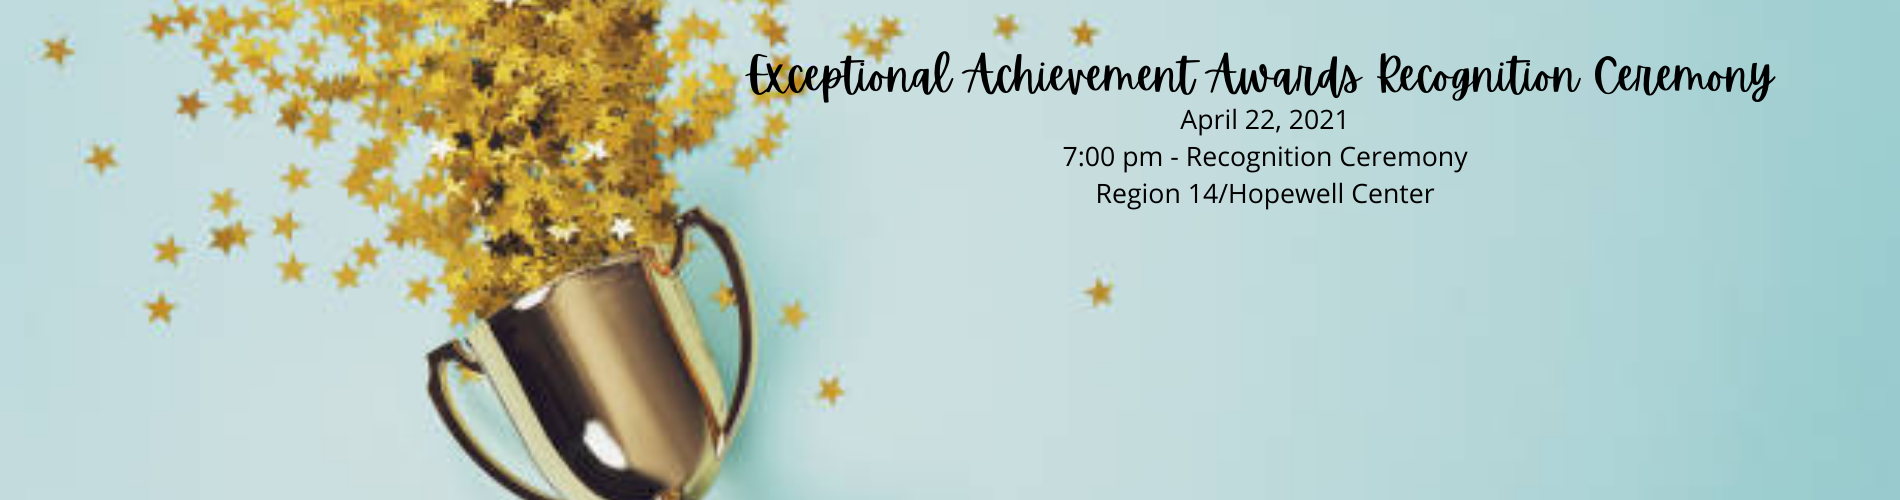 Exceptional Achievement Nominations